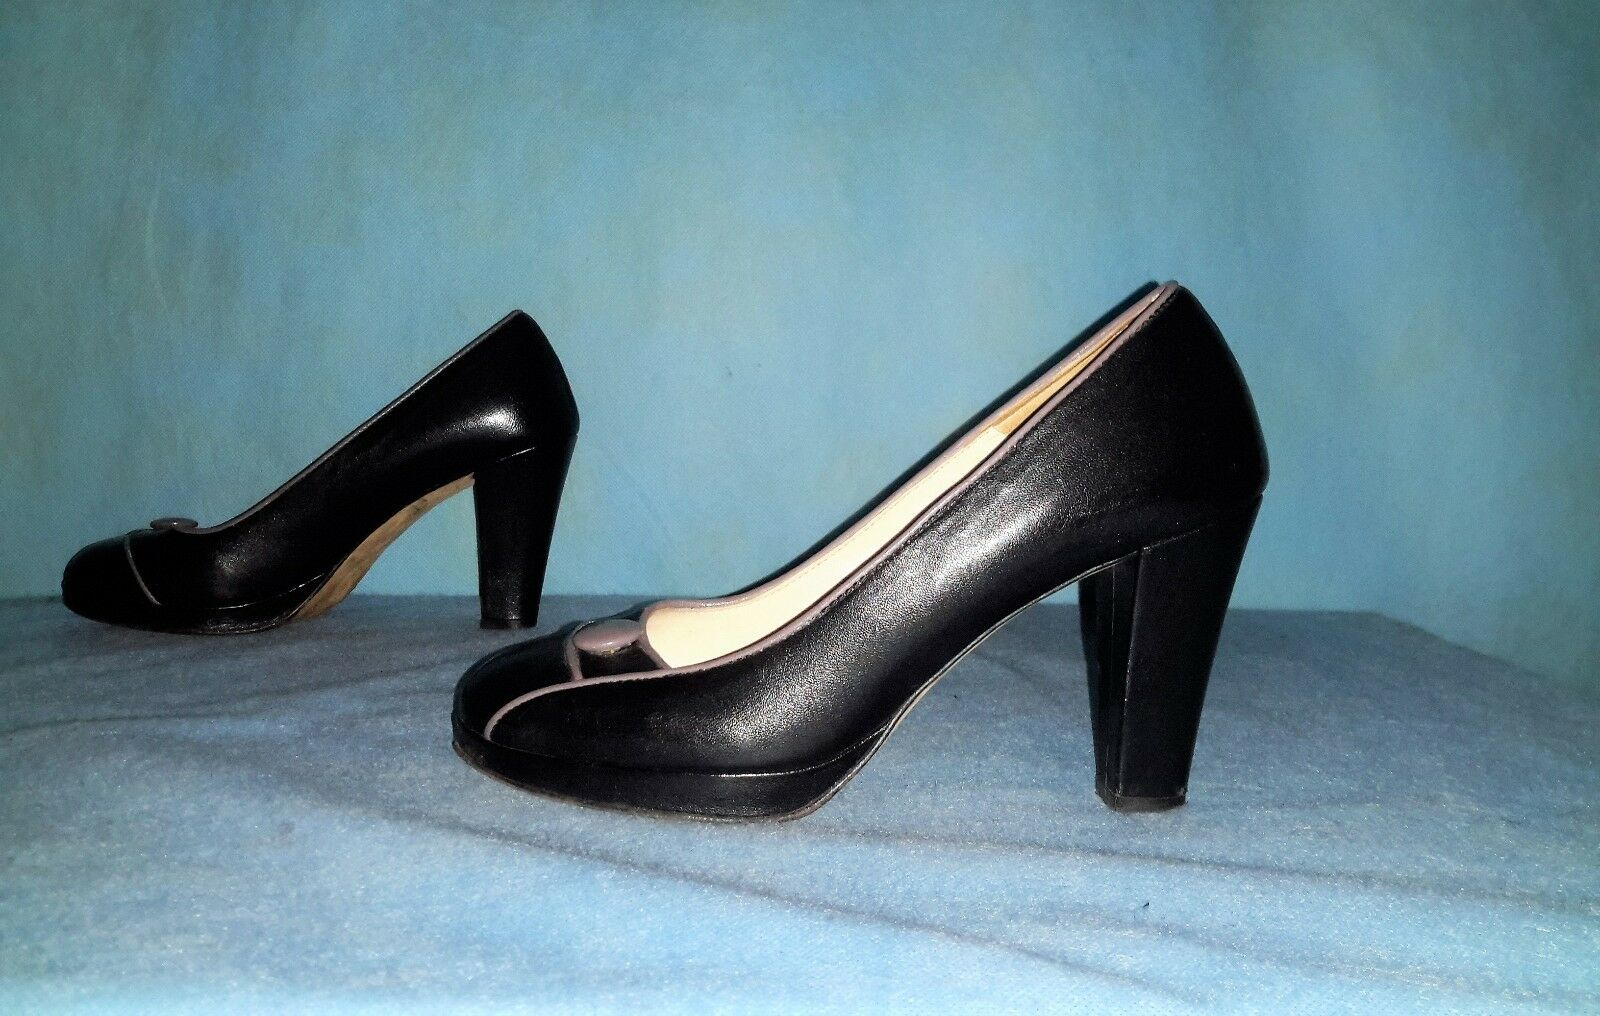 Escarpins PAUL tout & JOE SISTER tout PAUL cuir noir pointure 38,5 fr TBE de4b06